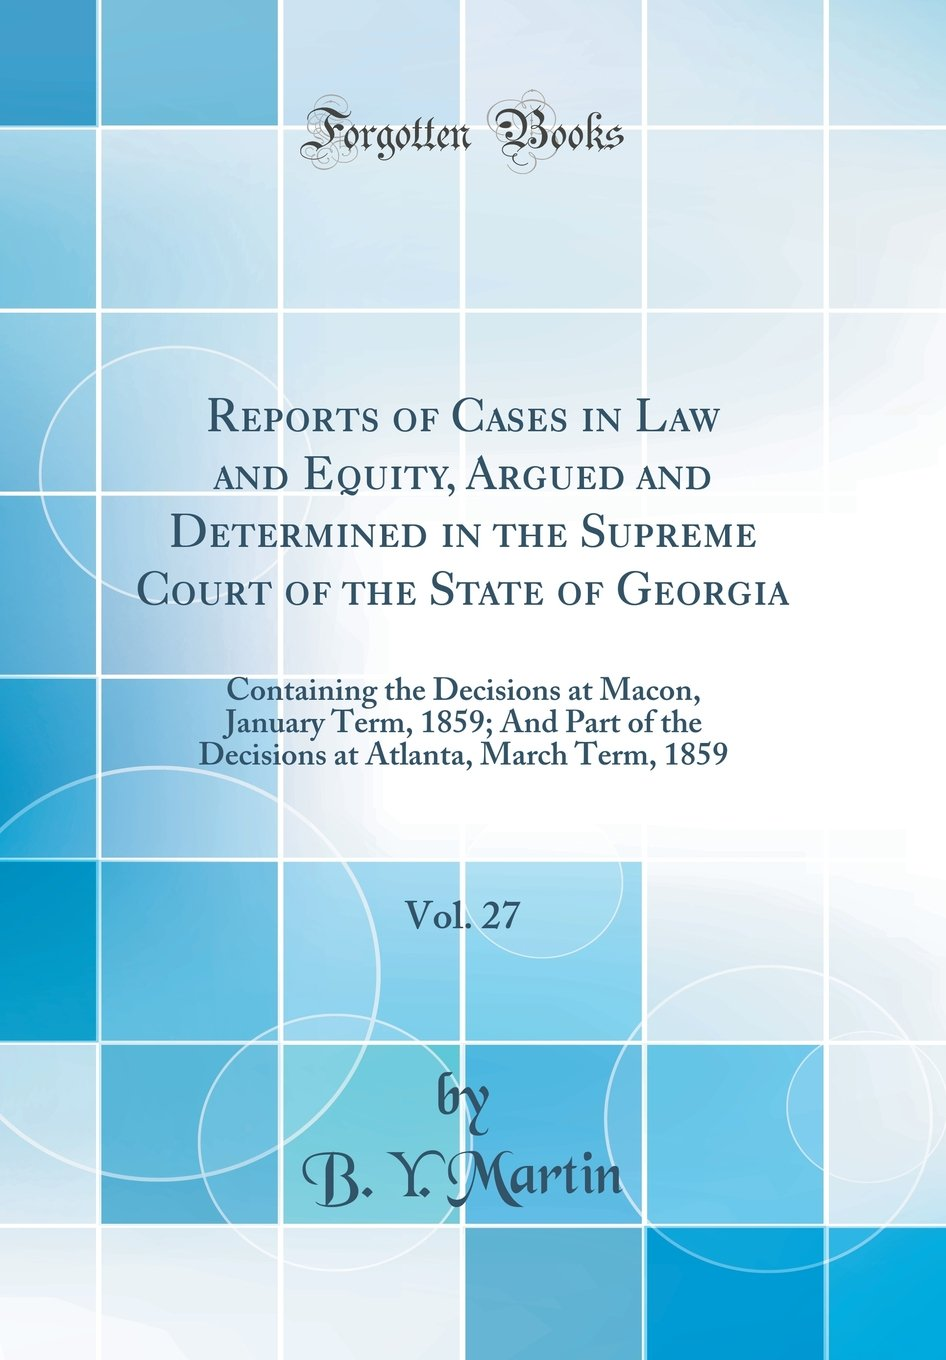 Reports of Cases in Law and Equity, Argued and Determined in the Supreme Court of the State of Georgia, Vol. 27: Containing the Decisions at Macon. Atlanta, March Term, 1859 (Classic Reprint) pdf epub